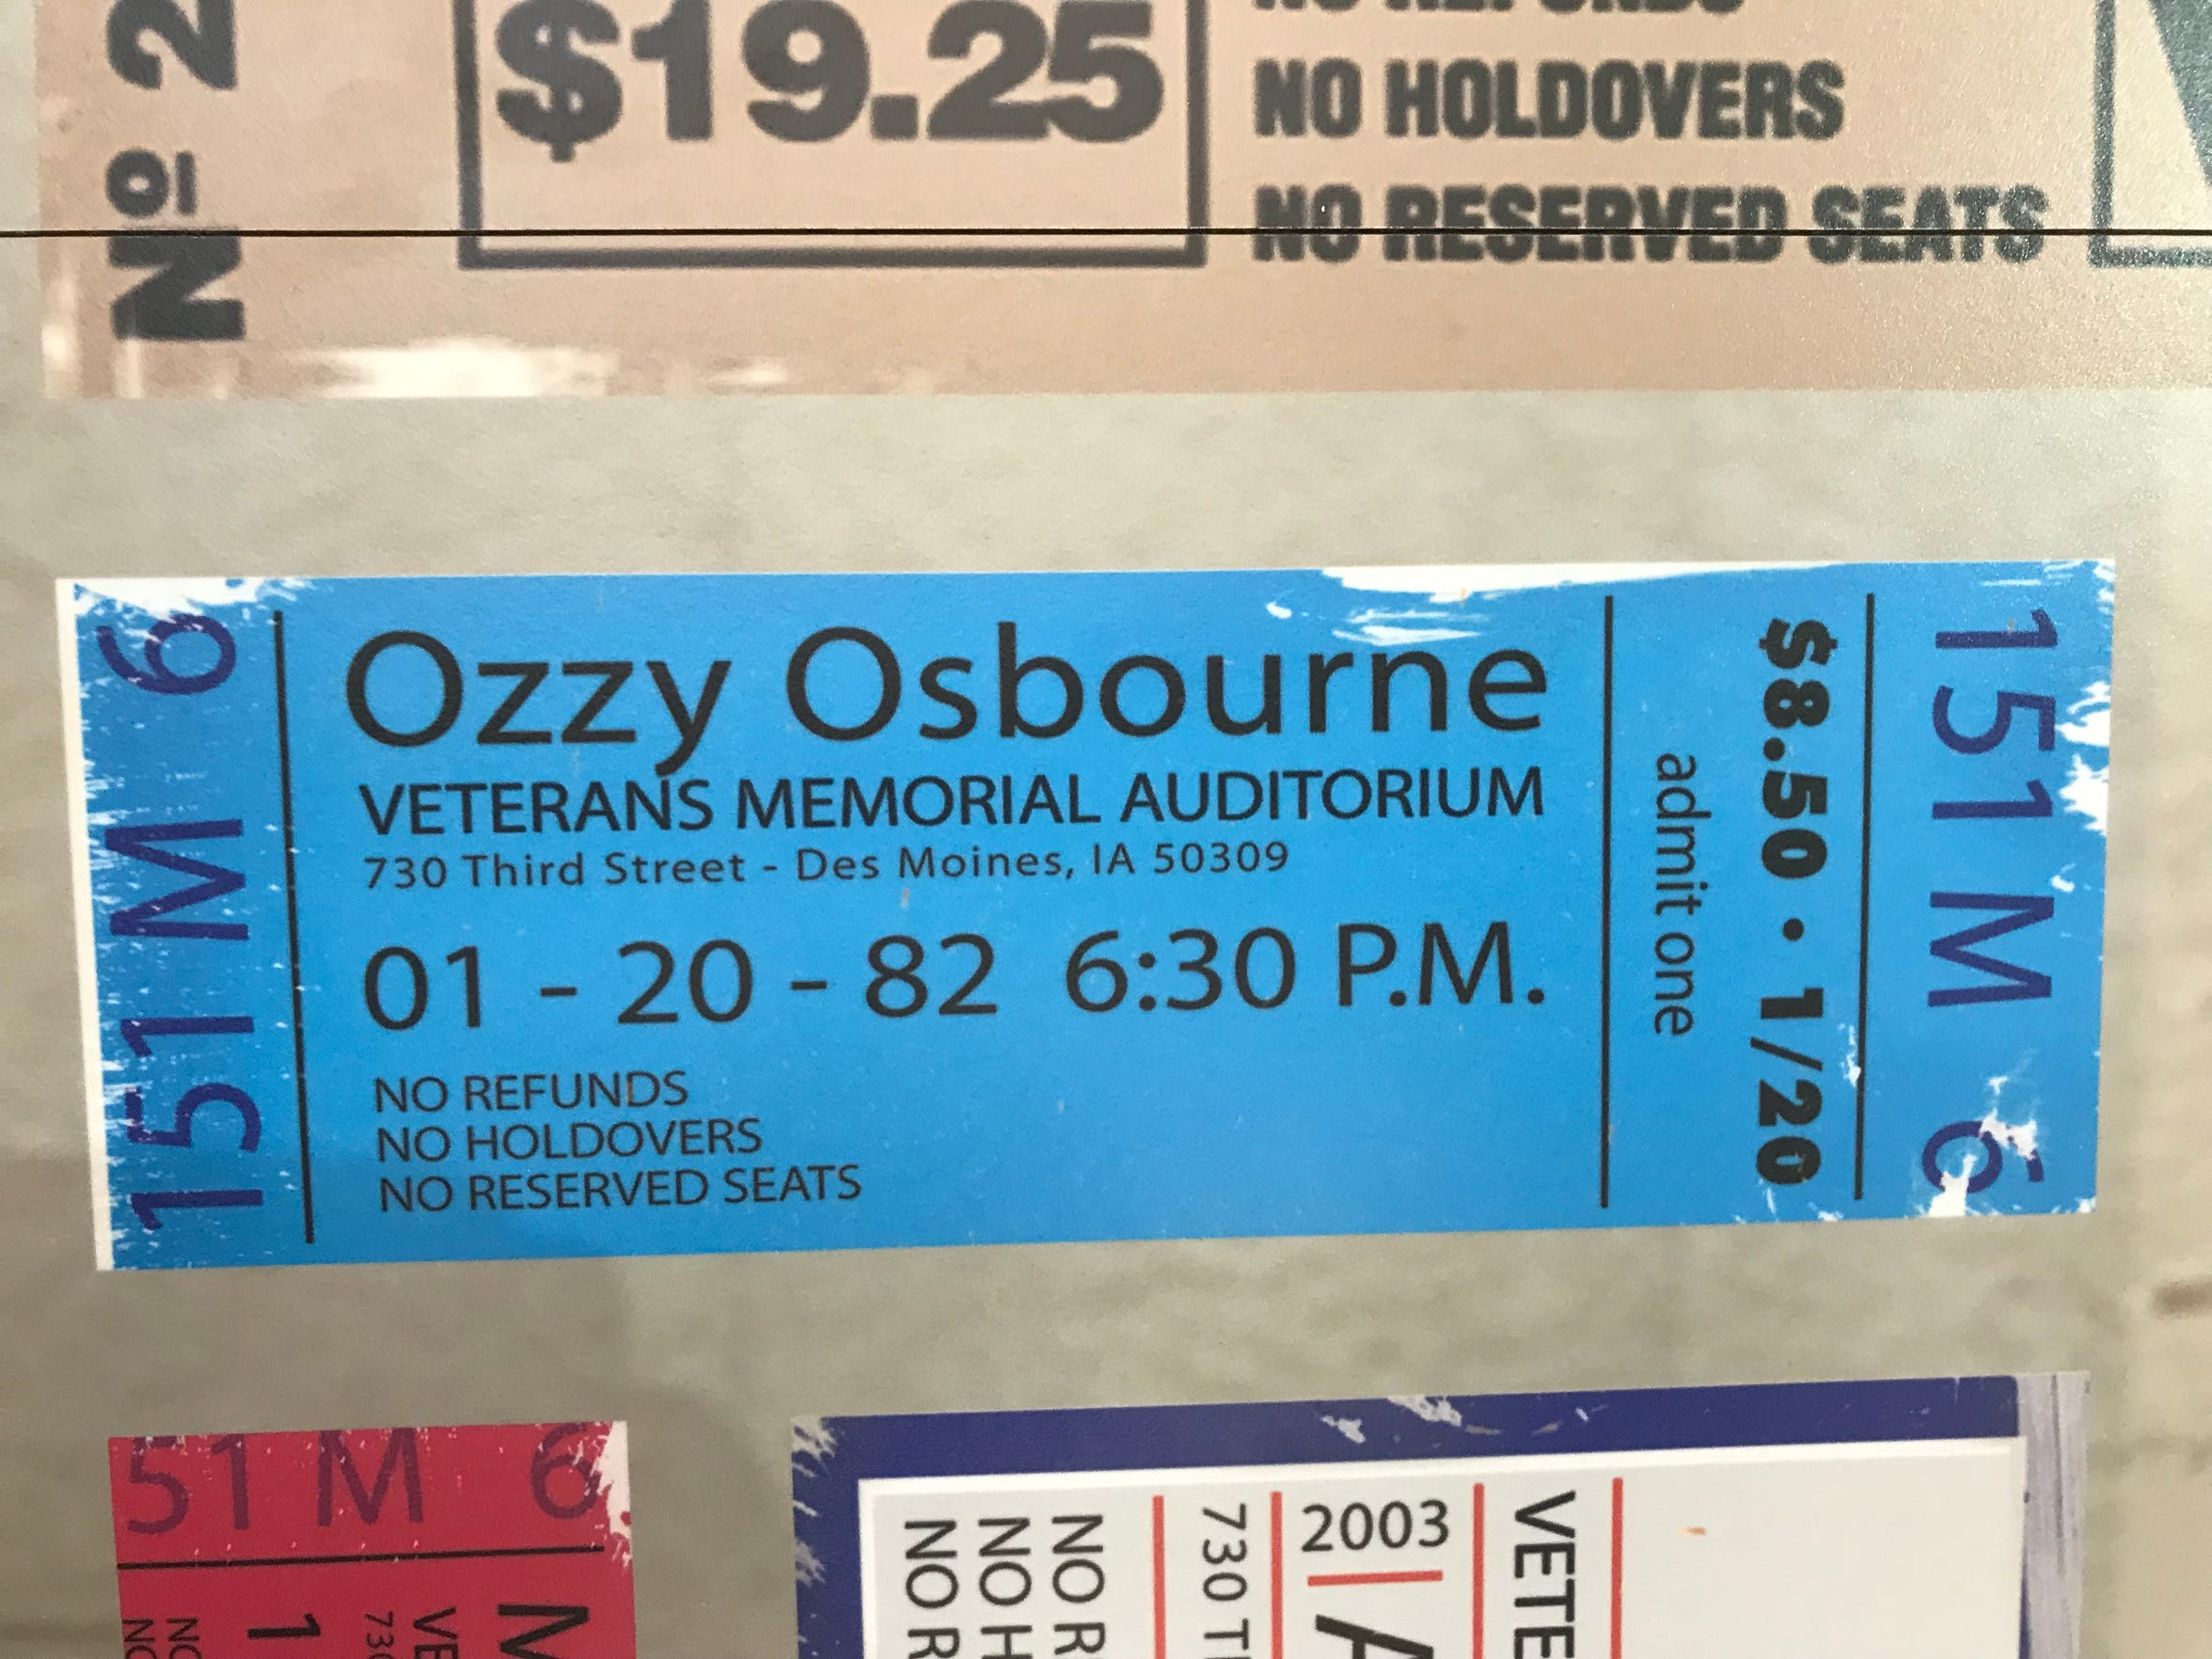 A replica ticket stub from an Ozzy Osbourne concert on Jan. 20, 1982, at Veterans Memorial Auditorium in Des Moines, Iowa. Osbourne infamously bit the head off a bat during the performance.